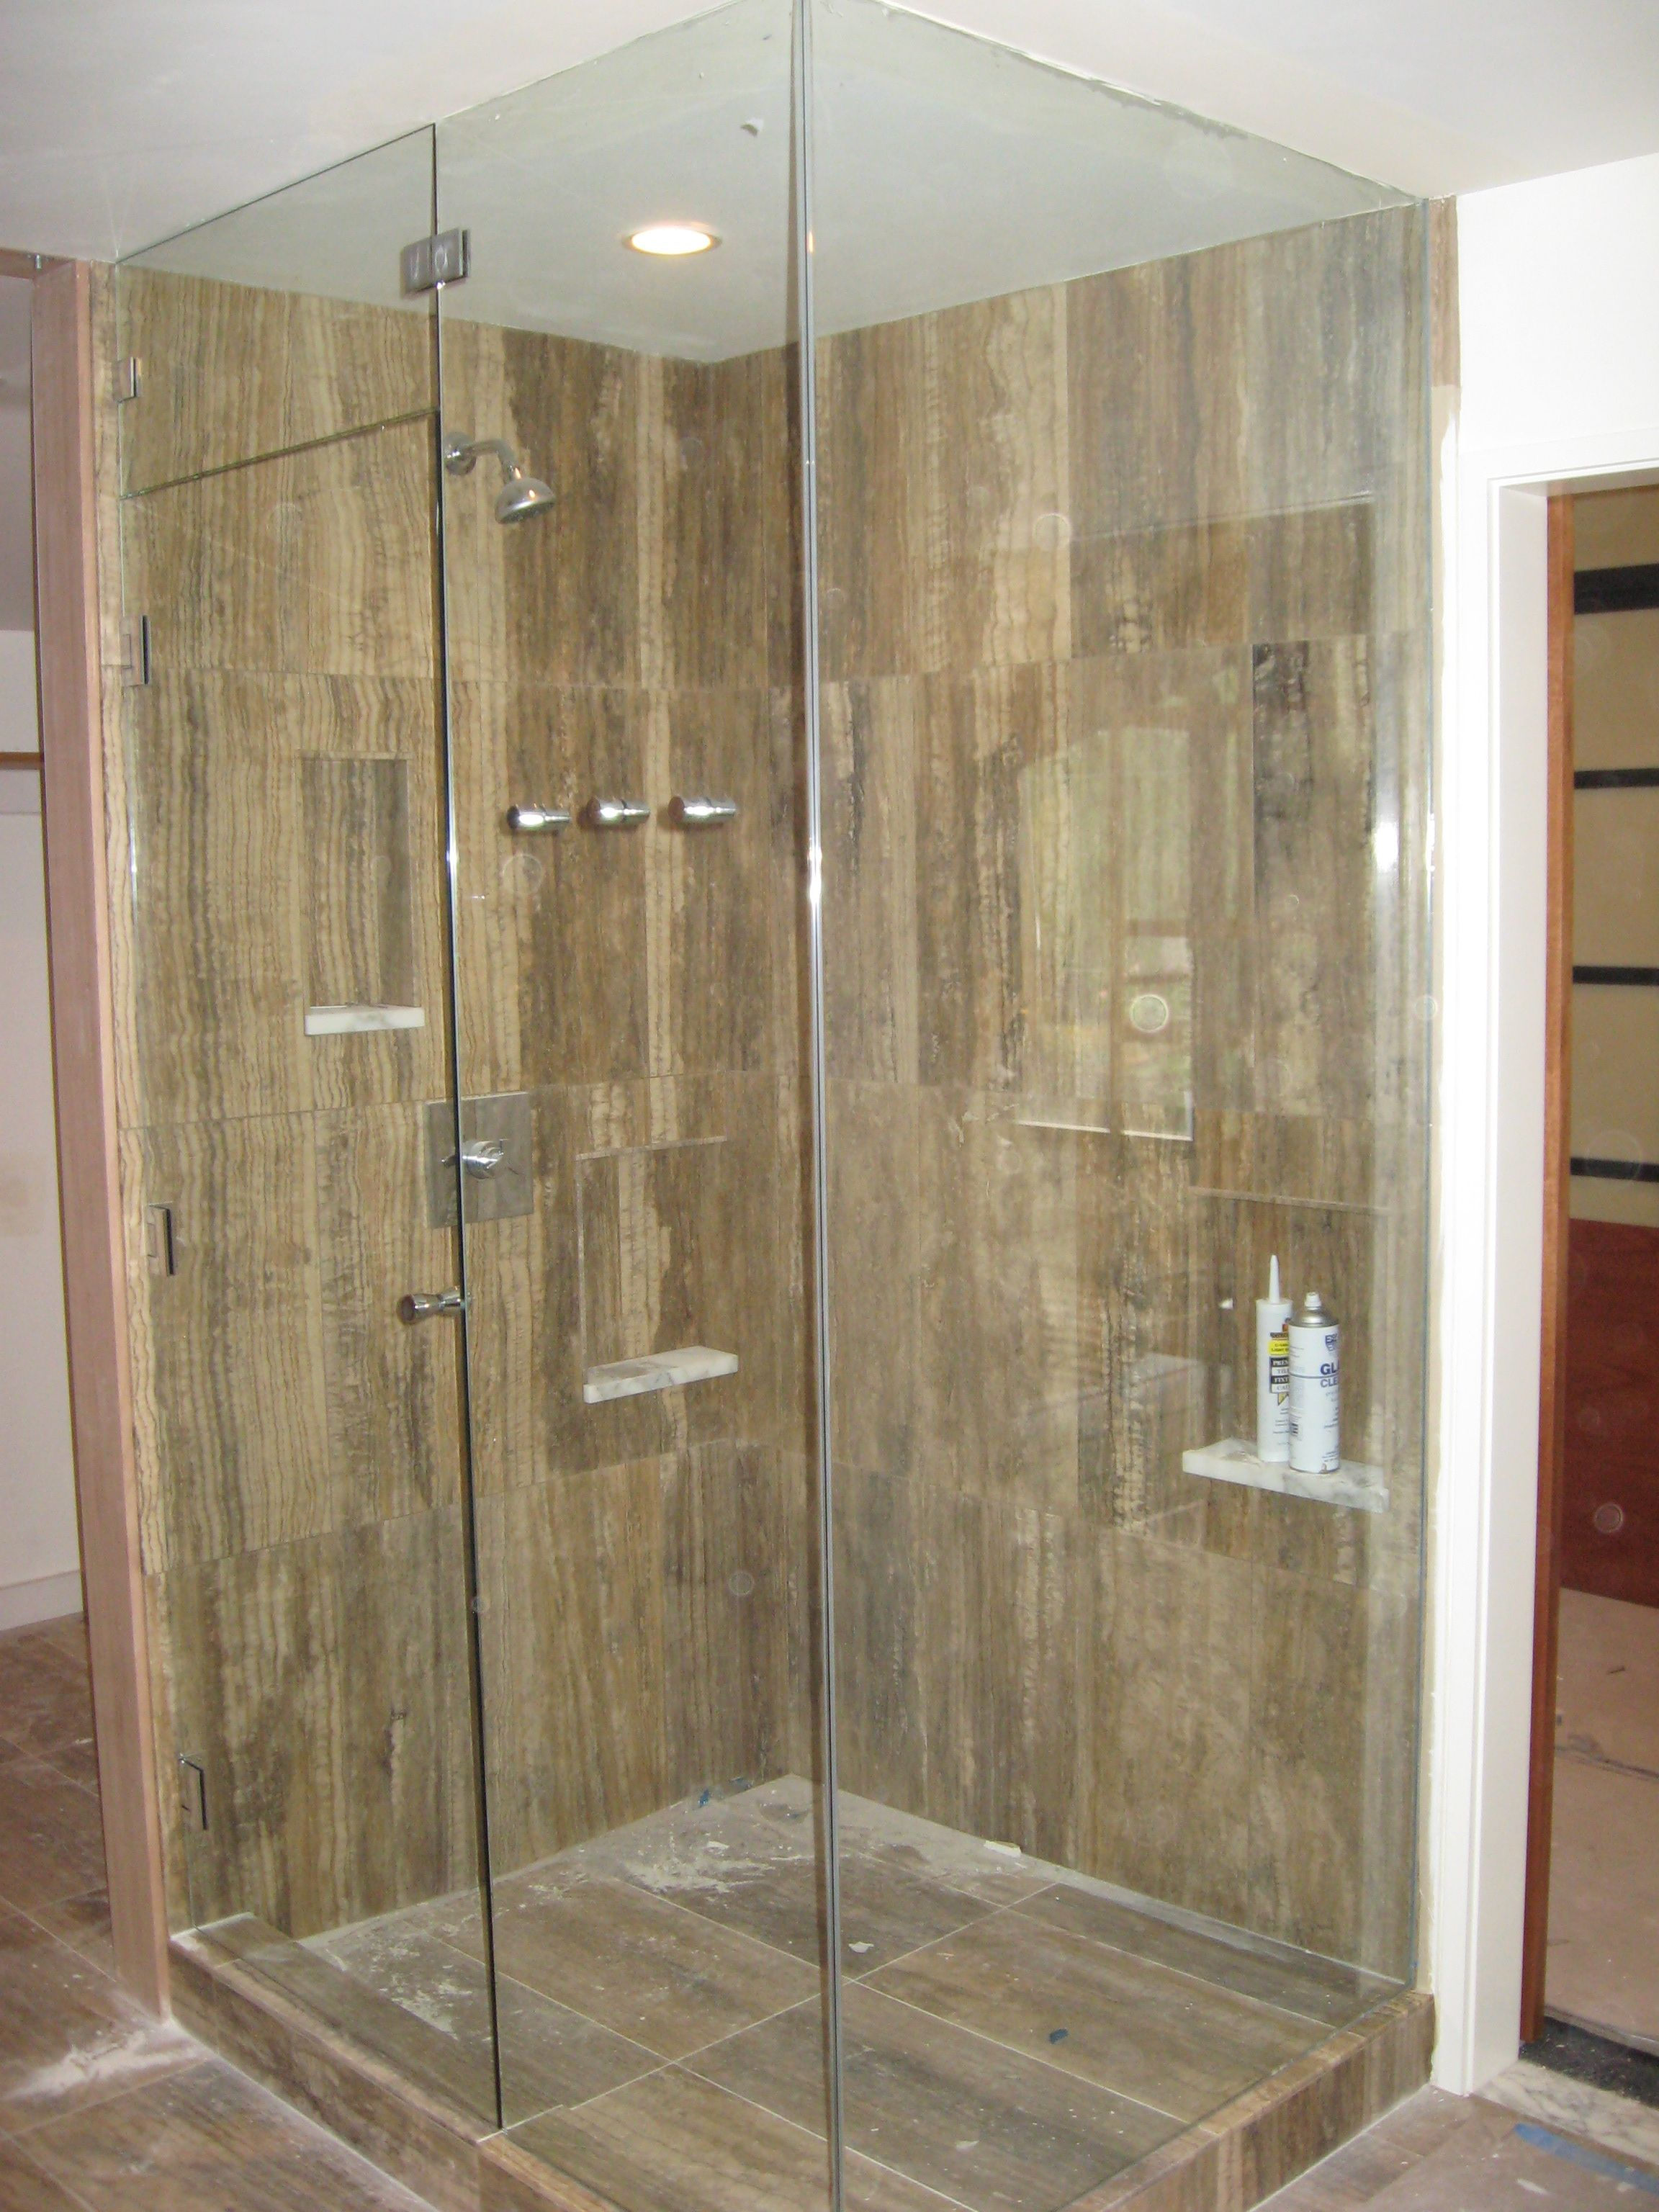 3 Panel Sliding Shower Door With Mirror | http://sourceabl.com ...